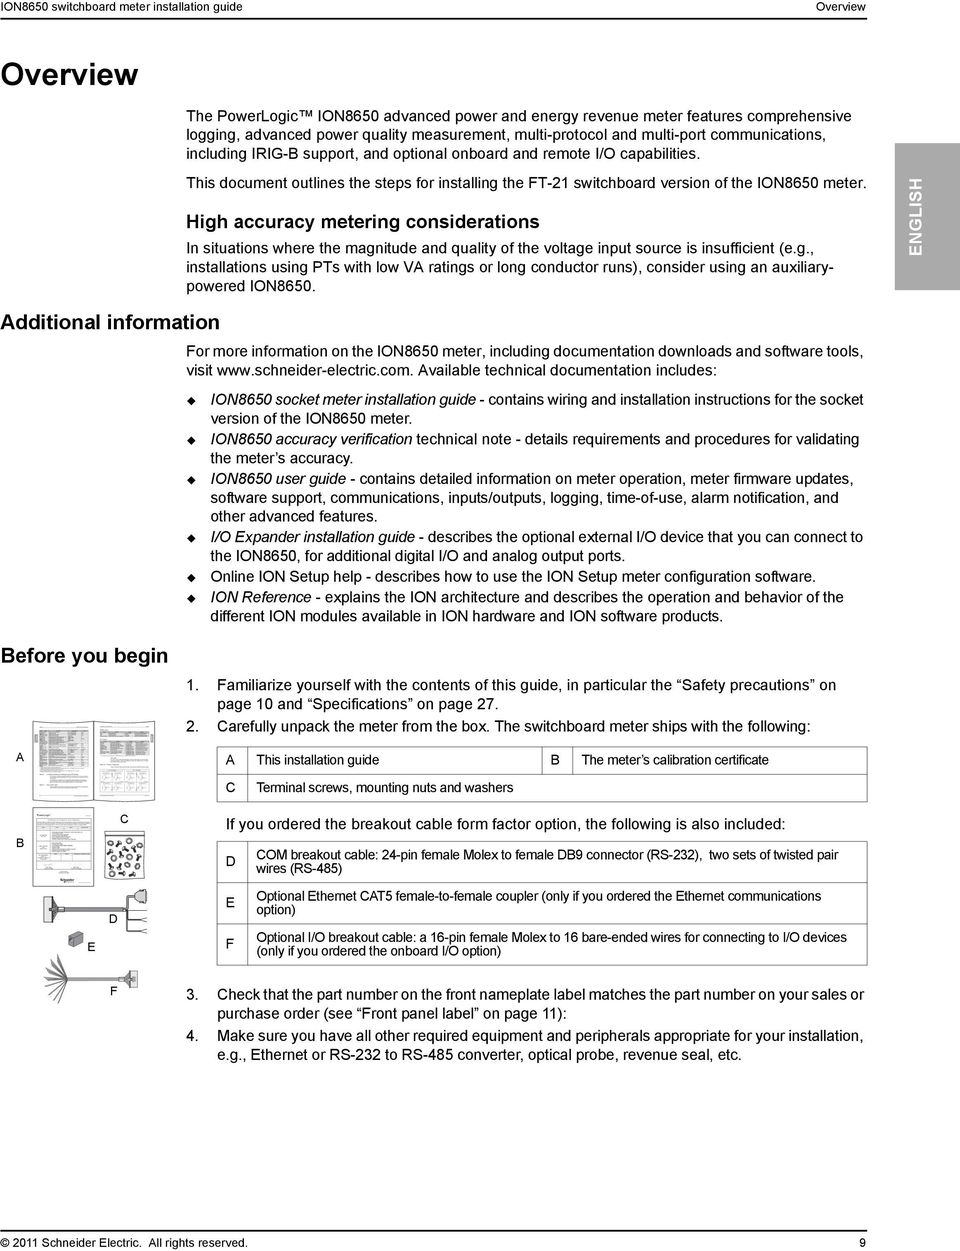 This document outlines the steps for installing the FT-21 switchboard version of the ION8650 meter.